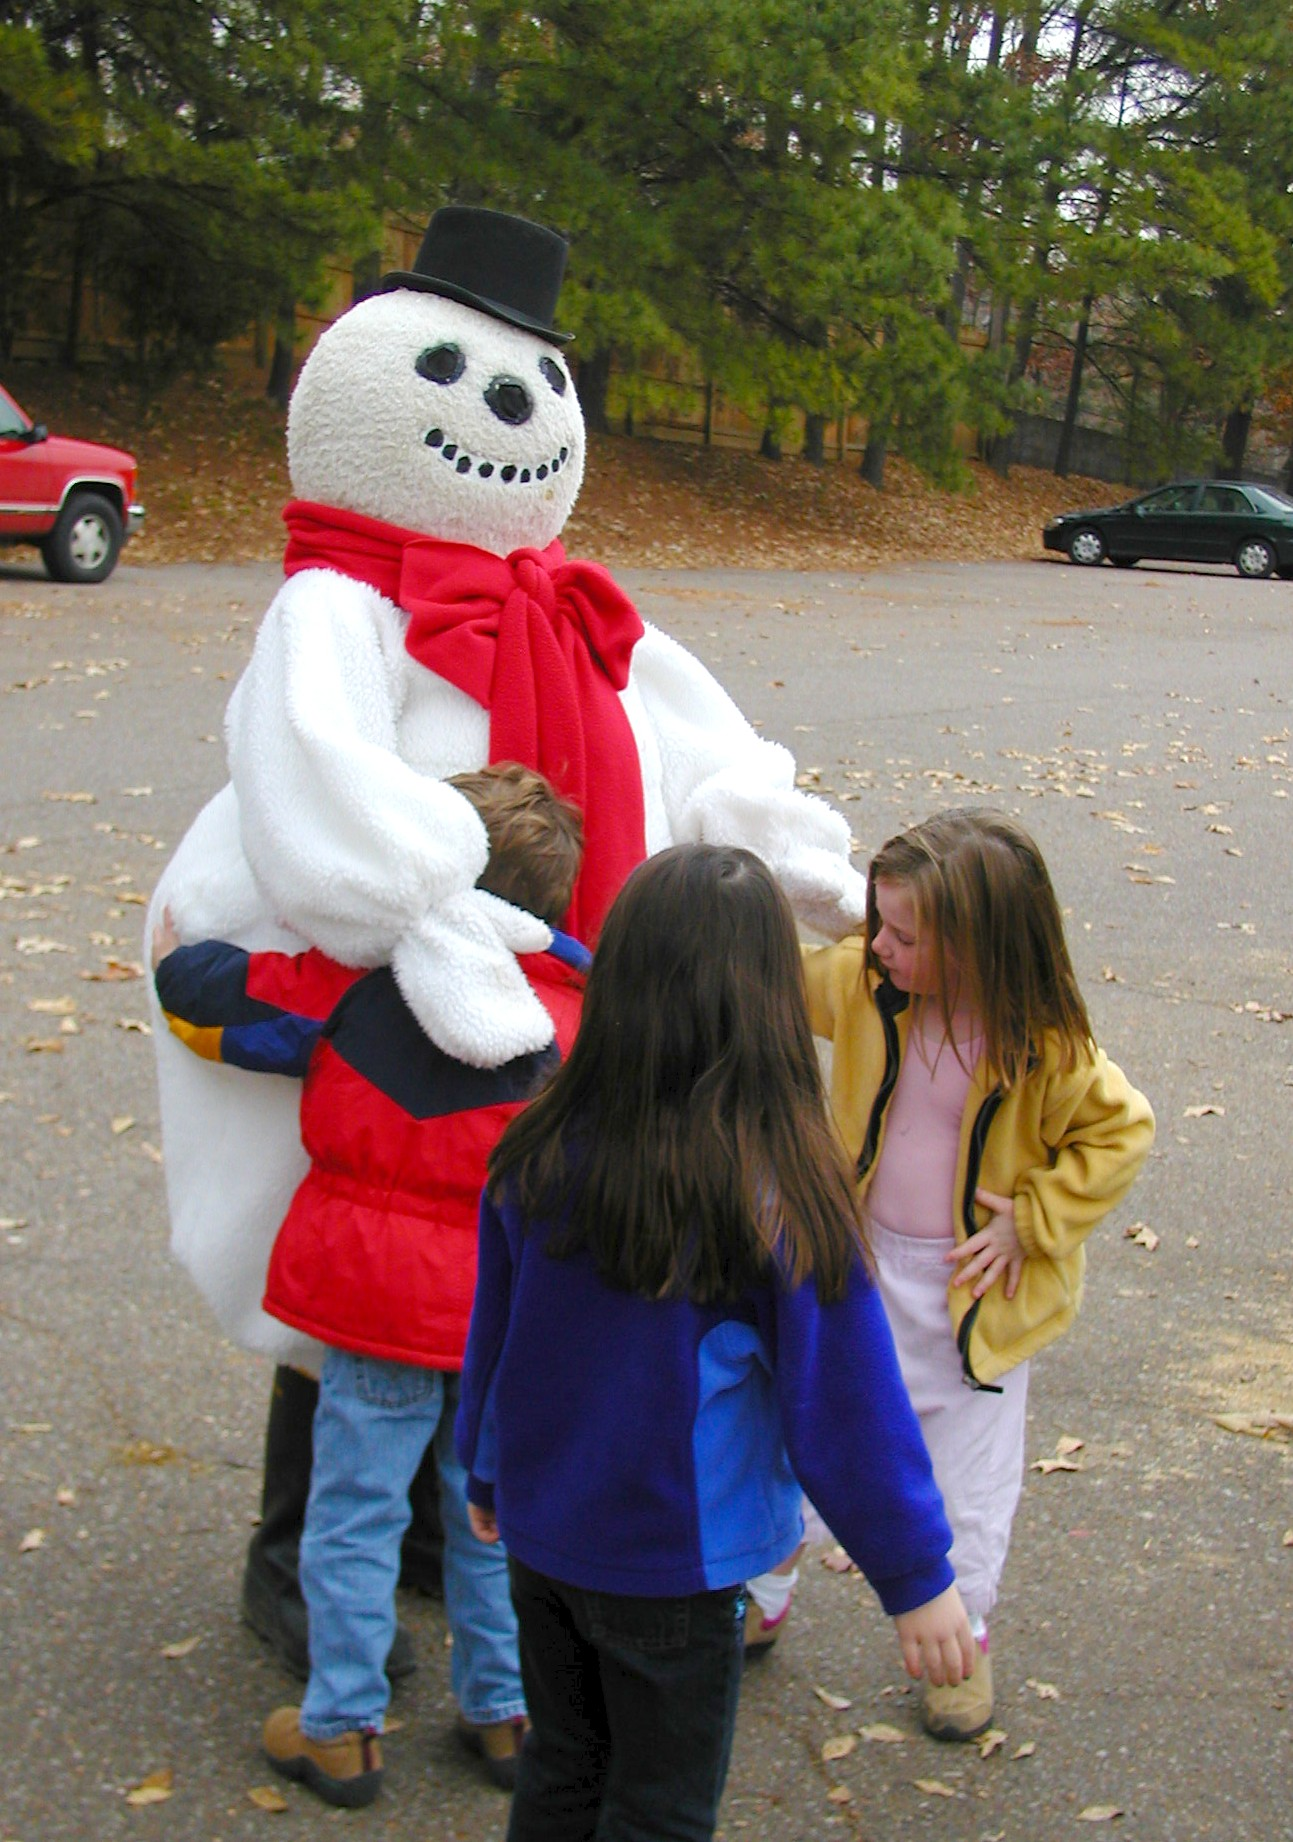 More hugs for Frosty!